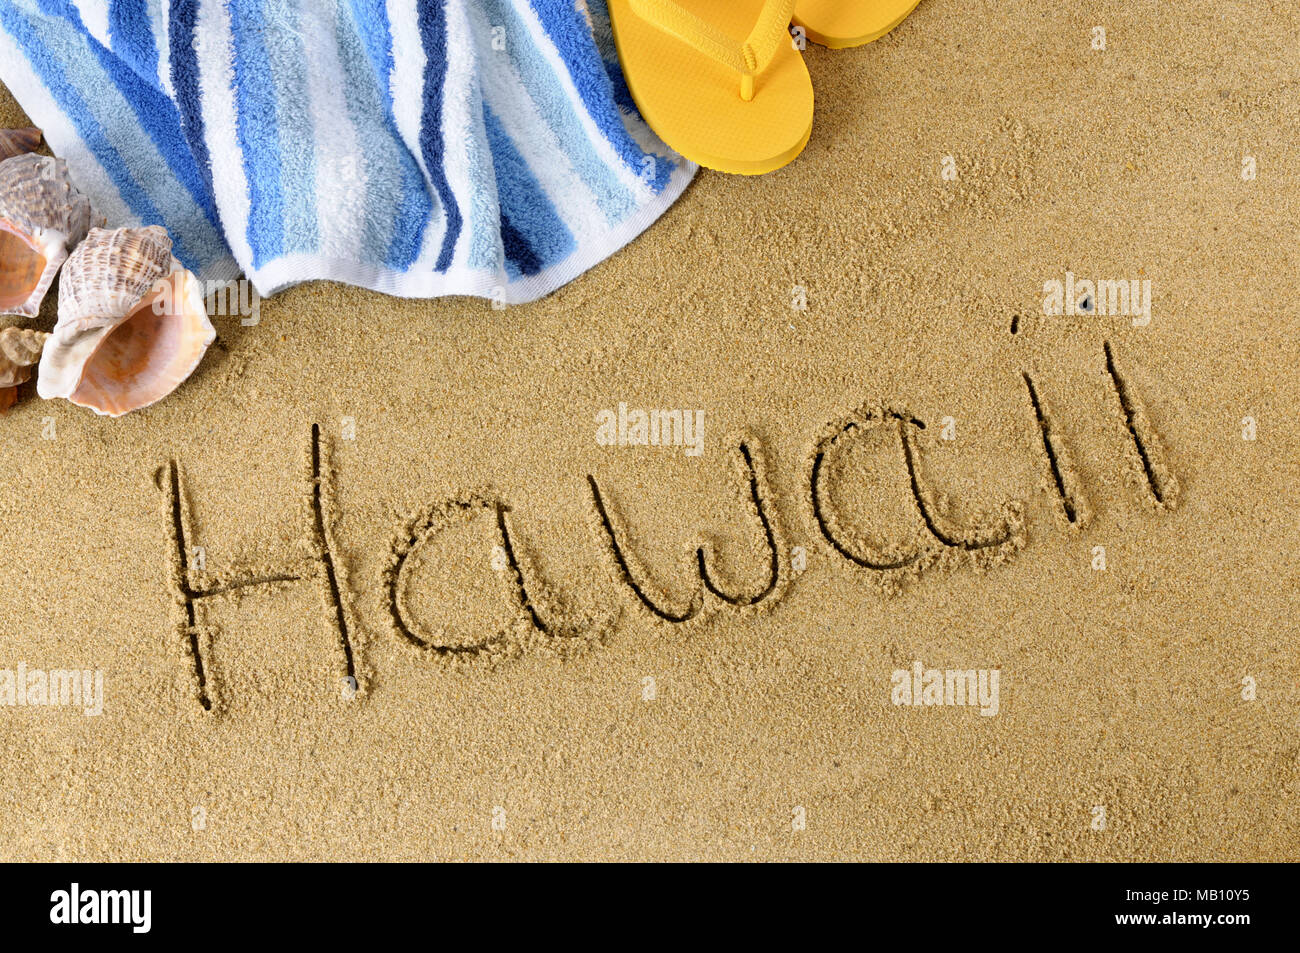 5d205995a7826 The word Hawaii written in sand with flip flops and beach towel - Stock  Image